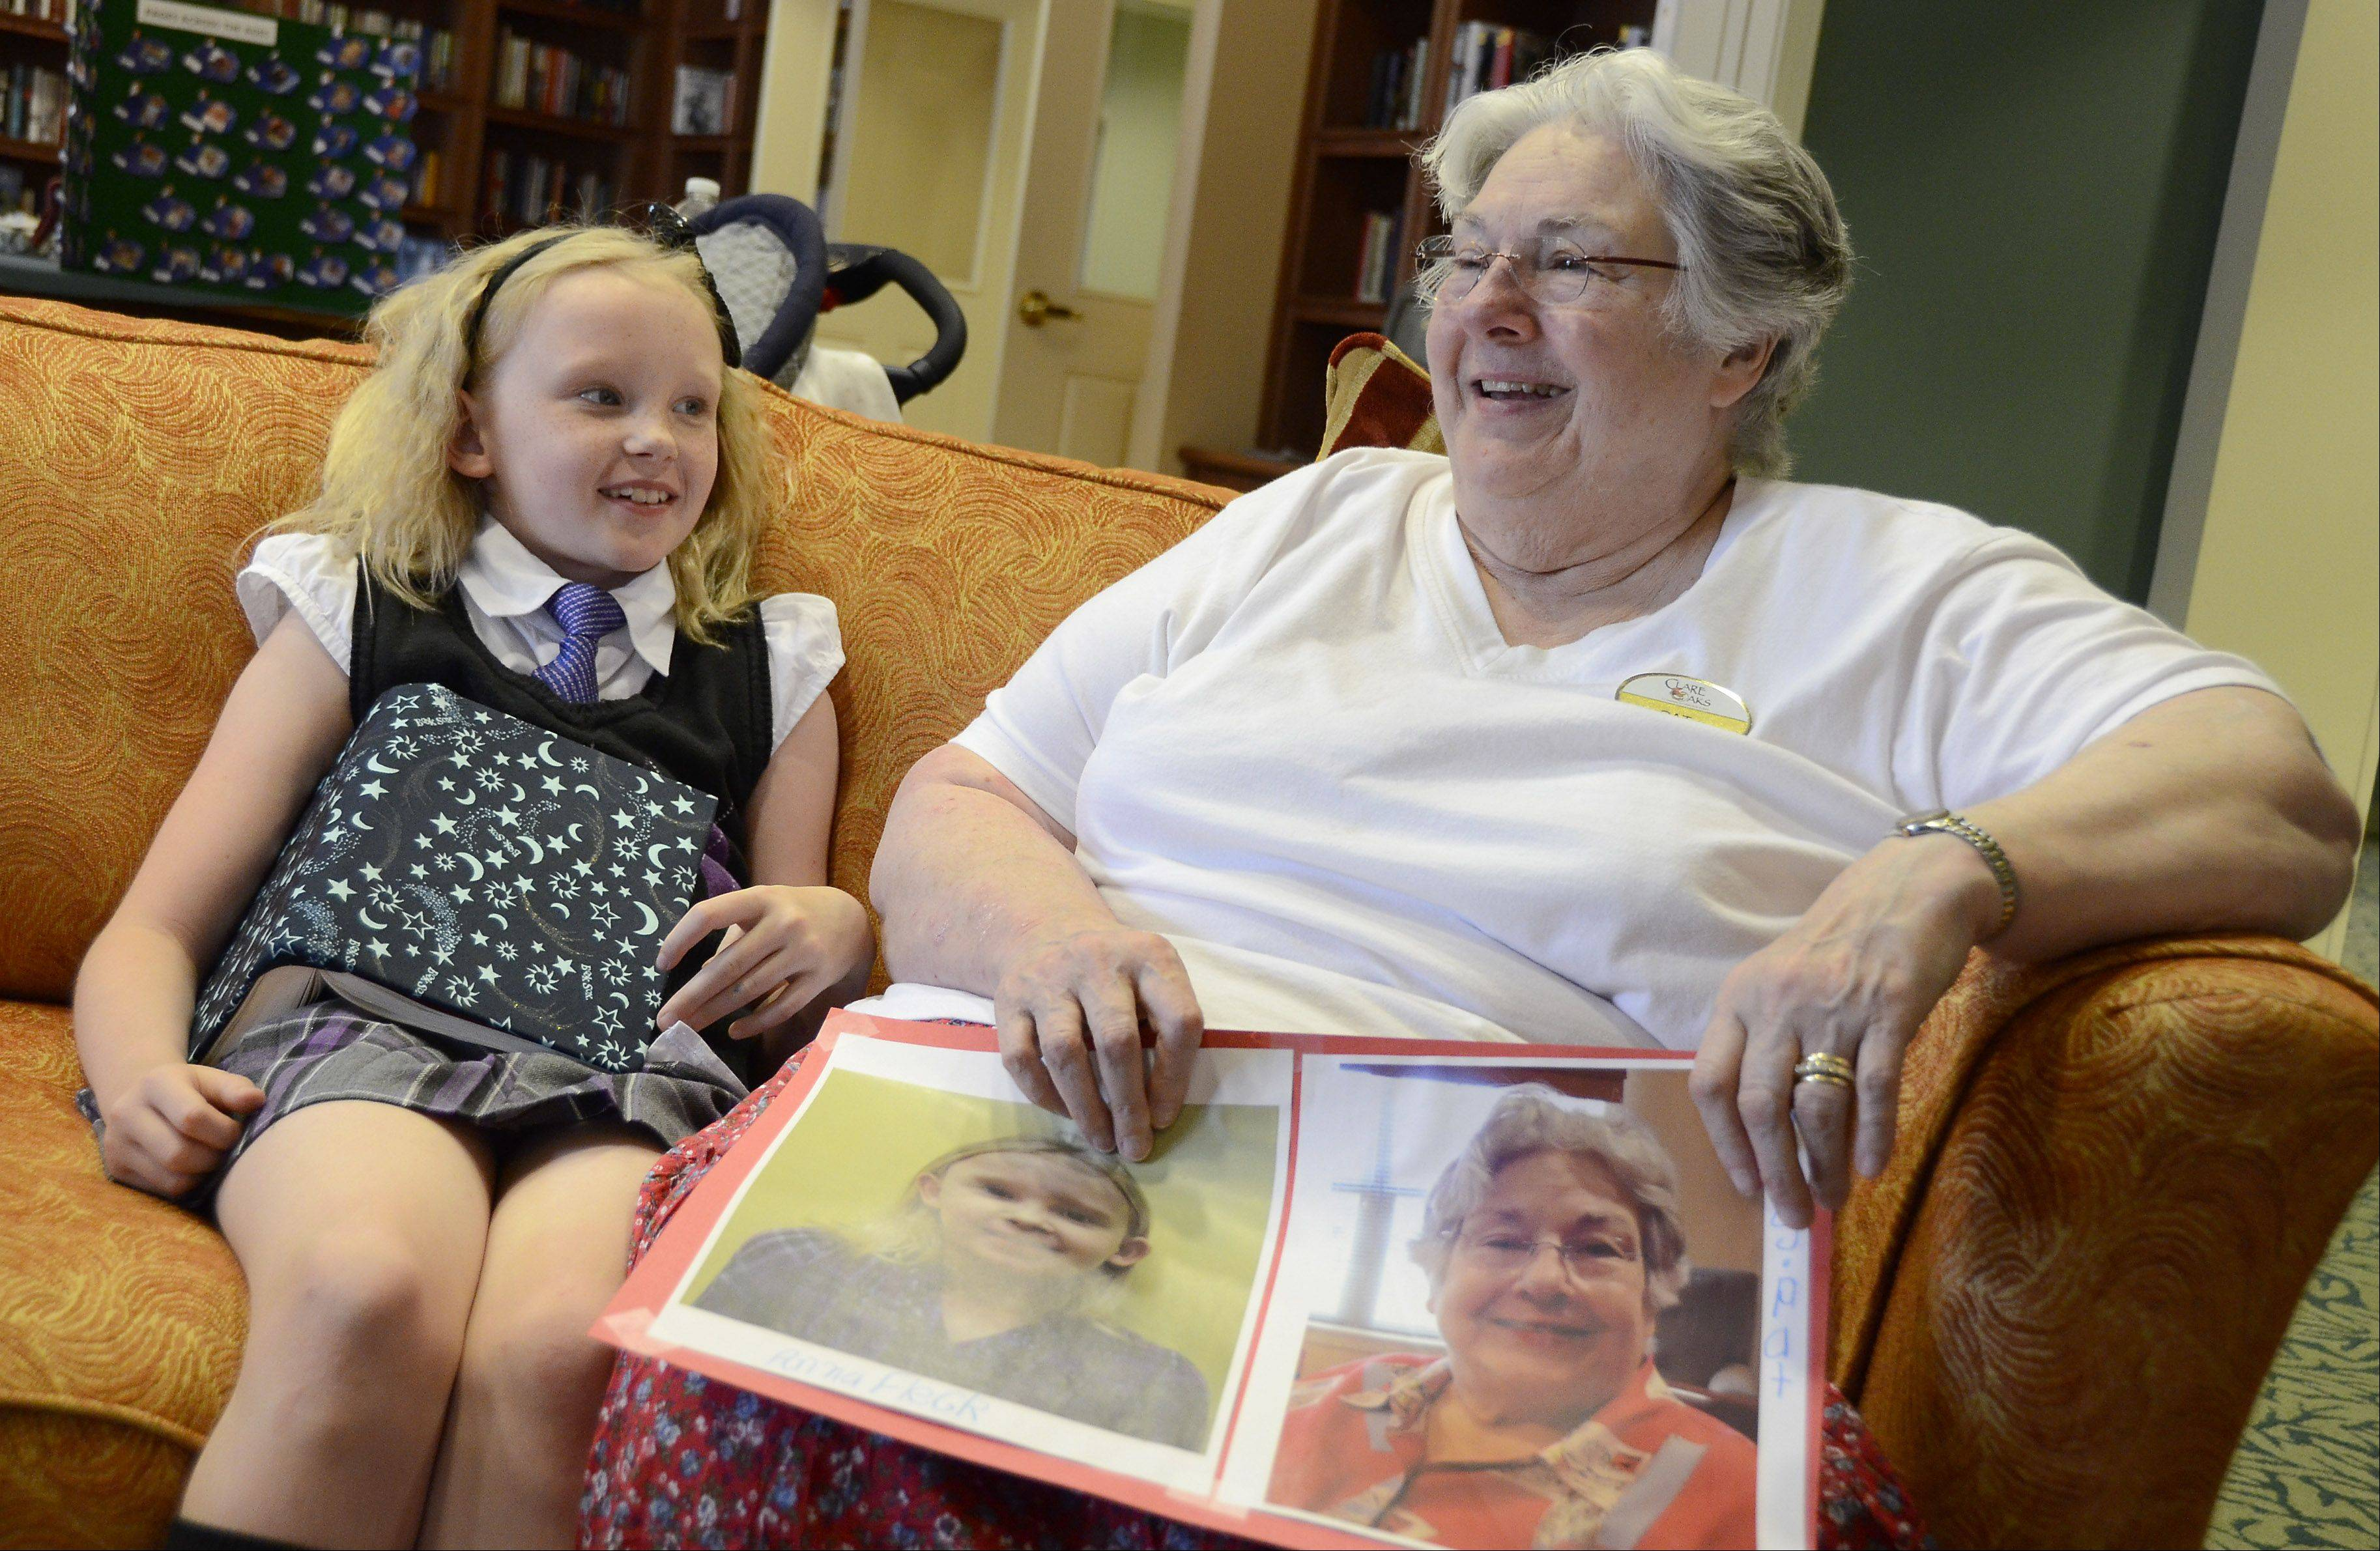 Anna Fleck, 8, and Pat Ozcomert chat at Clare Oaks Retirement Community. They met for the first time after corresponding to each other for two months as part of Pages Across Ages.